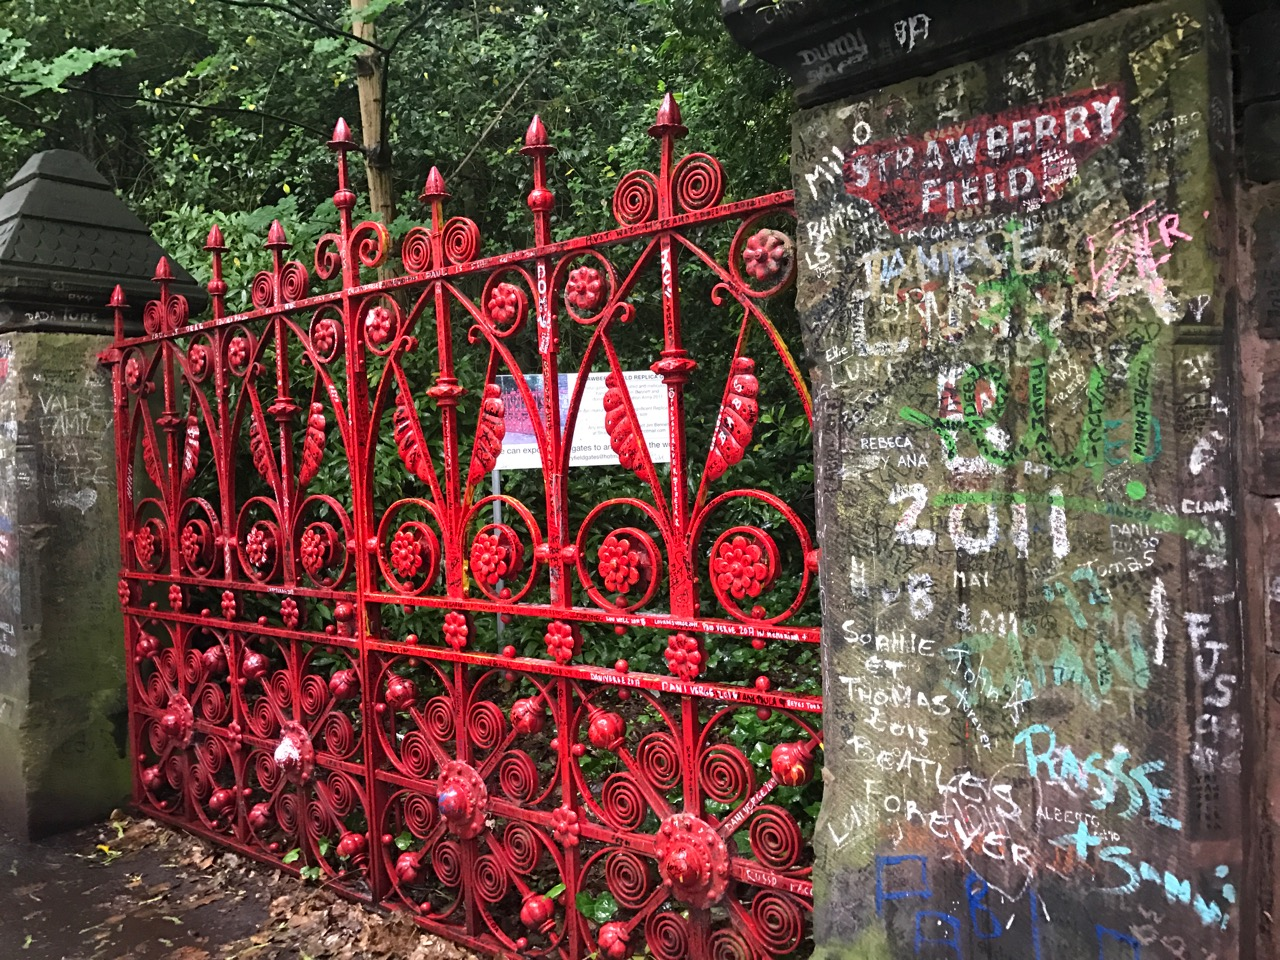 The gate to Strawberry Fields in Liverpool